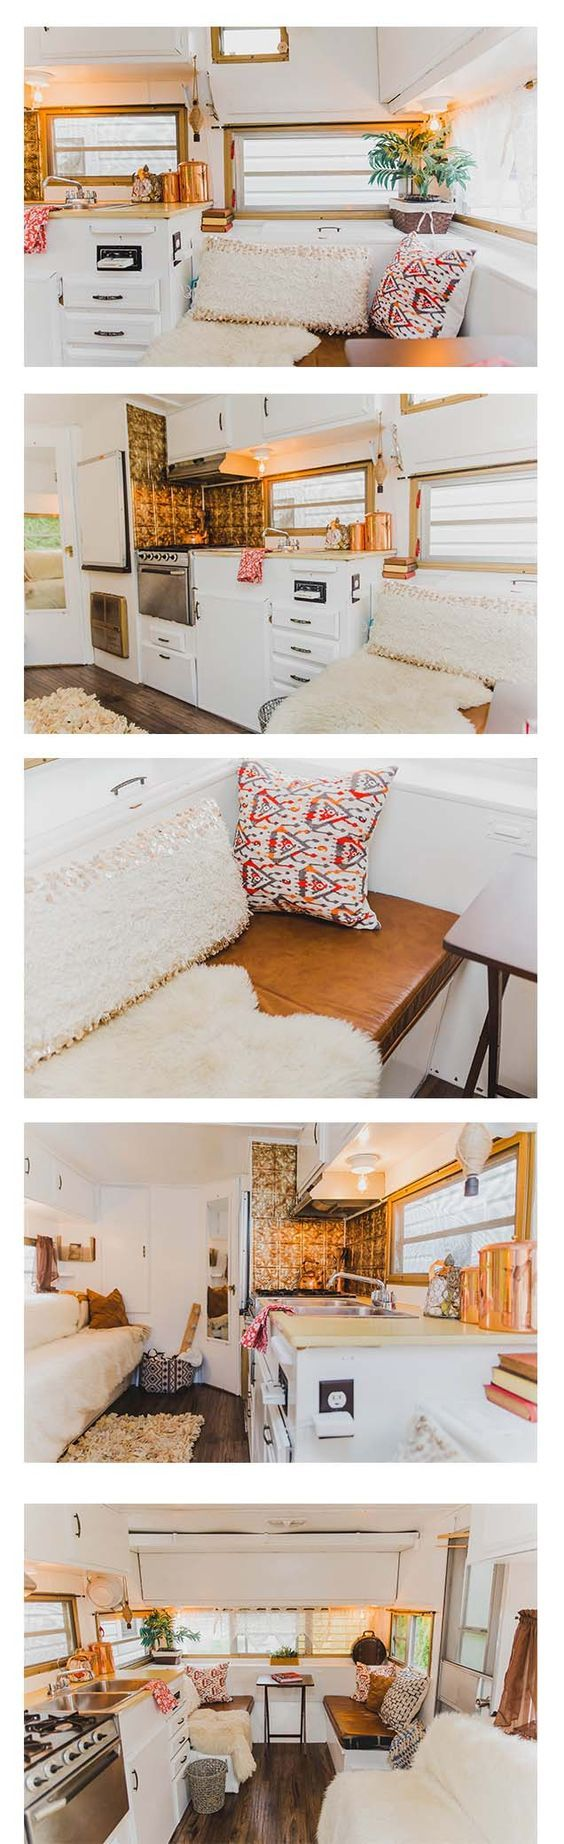 bell travel trailer reno – Google Search